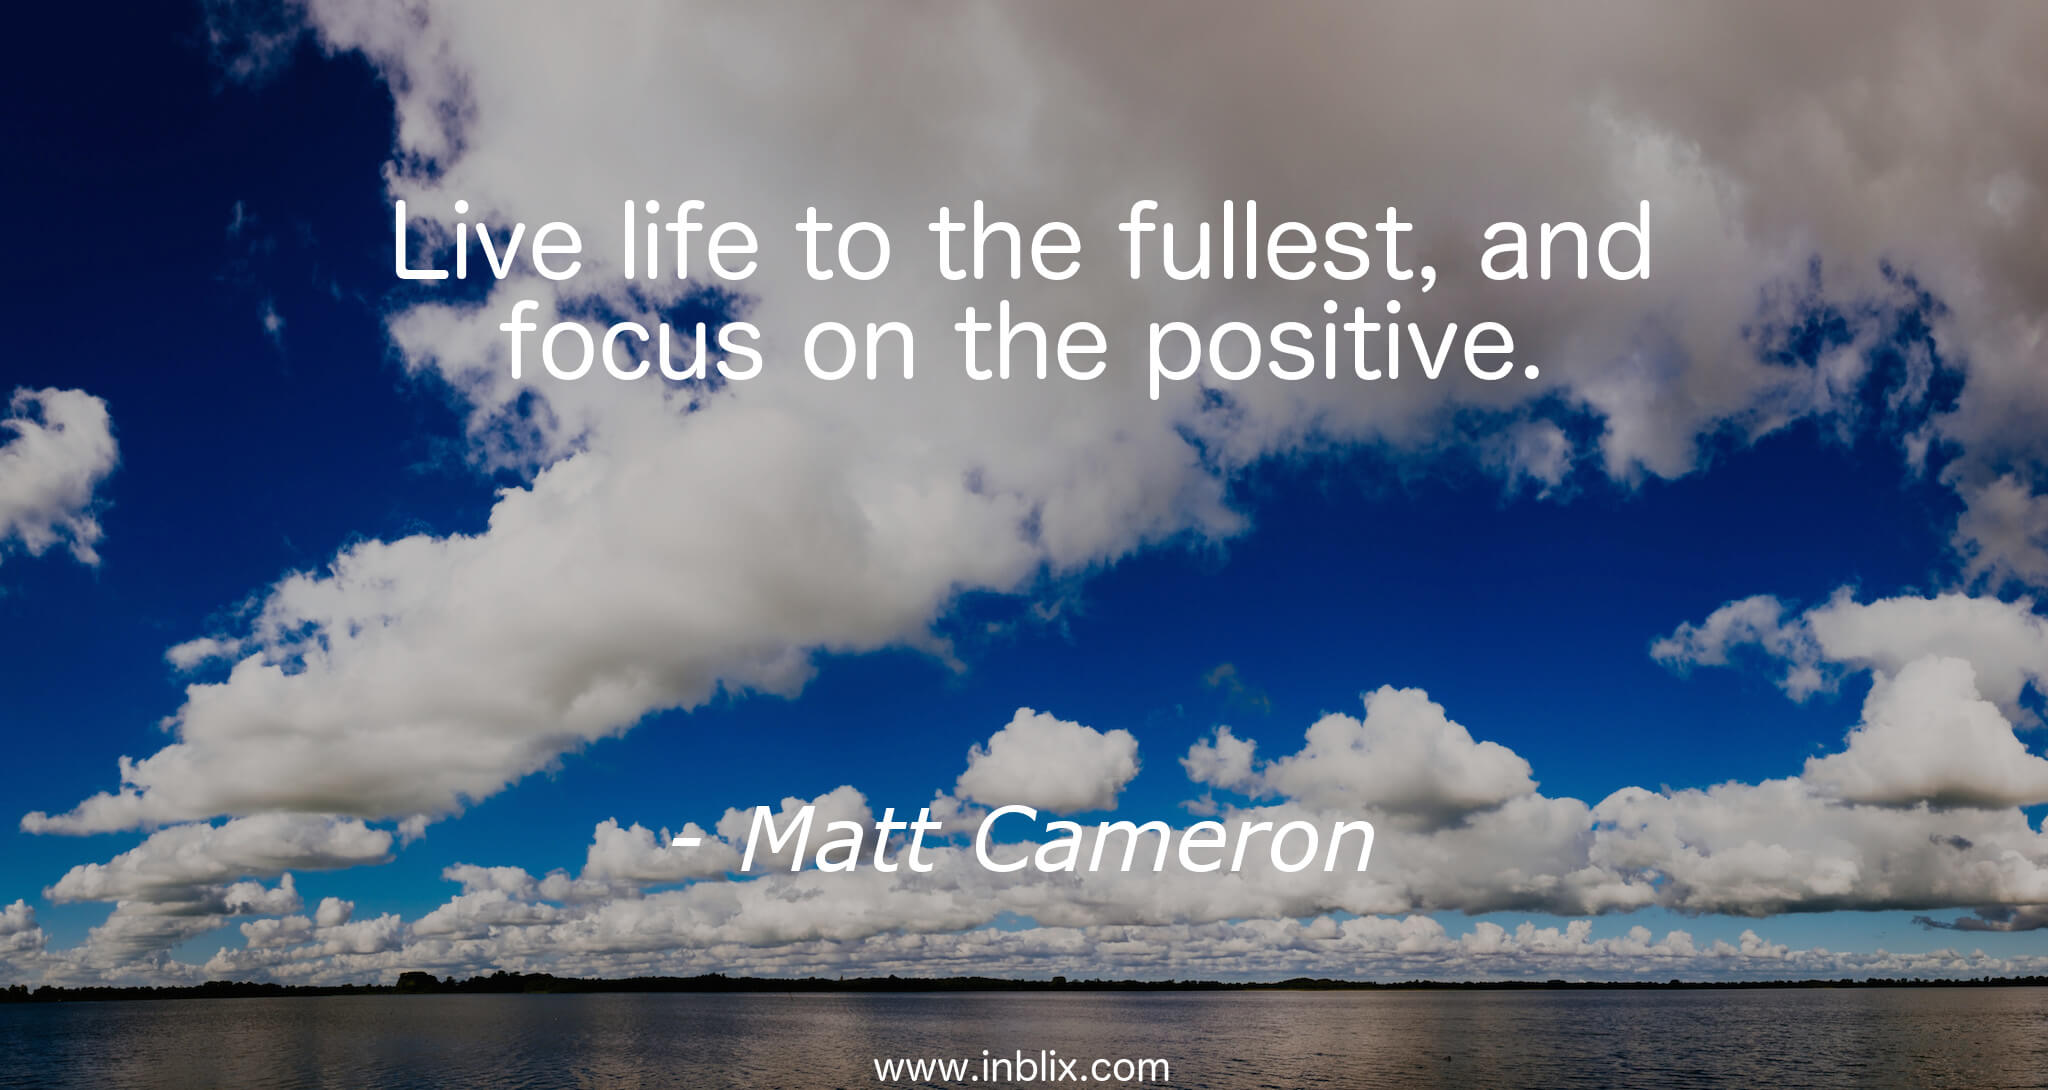 Live life to the fullest, and focus on the positive.